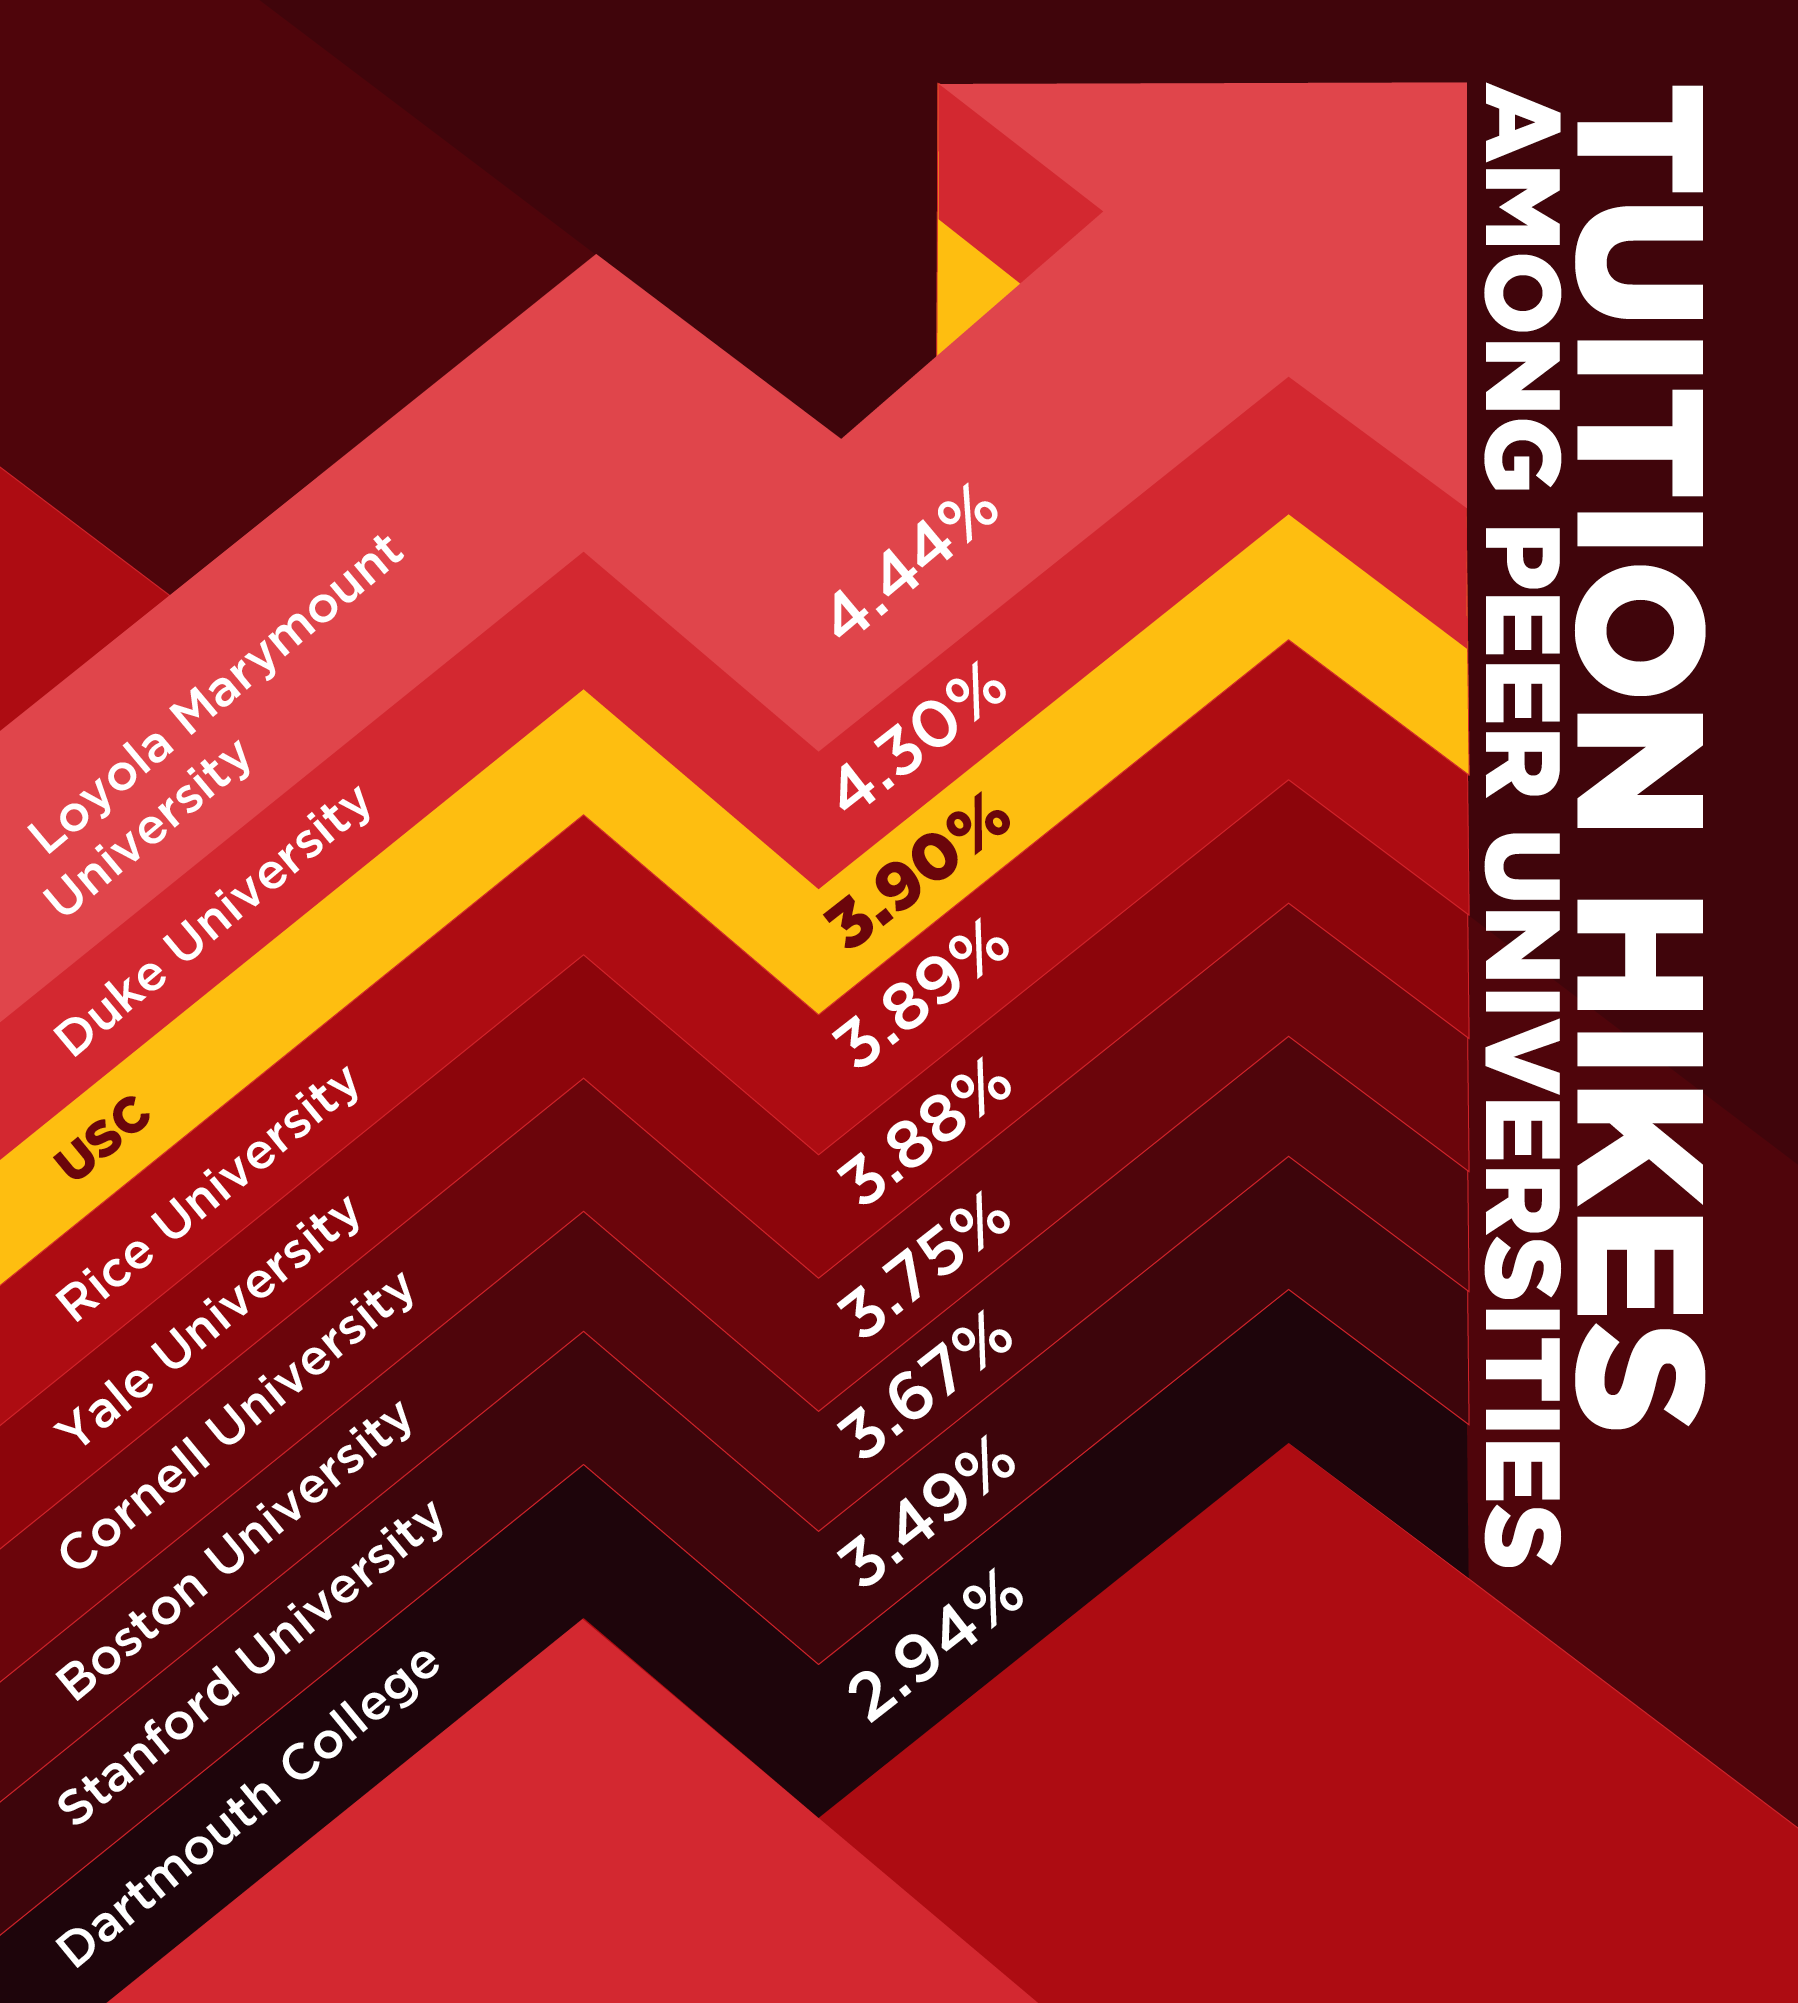 Tuition hike near average among peer institutions | Daily Trojan